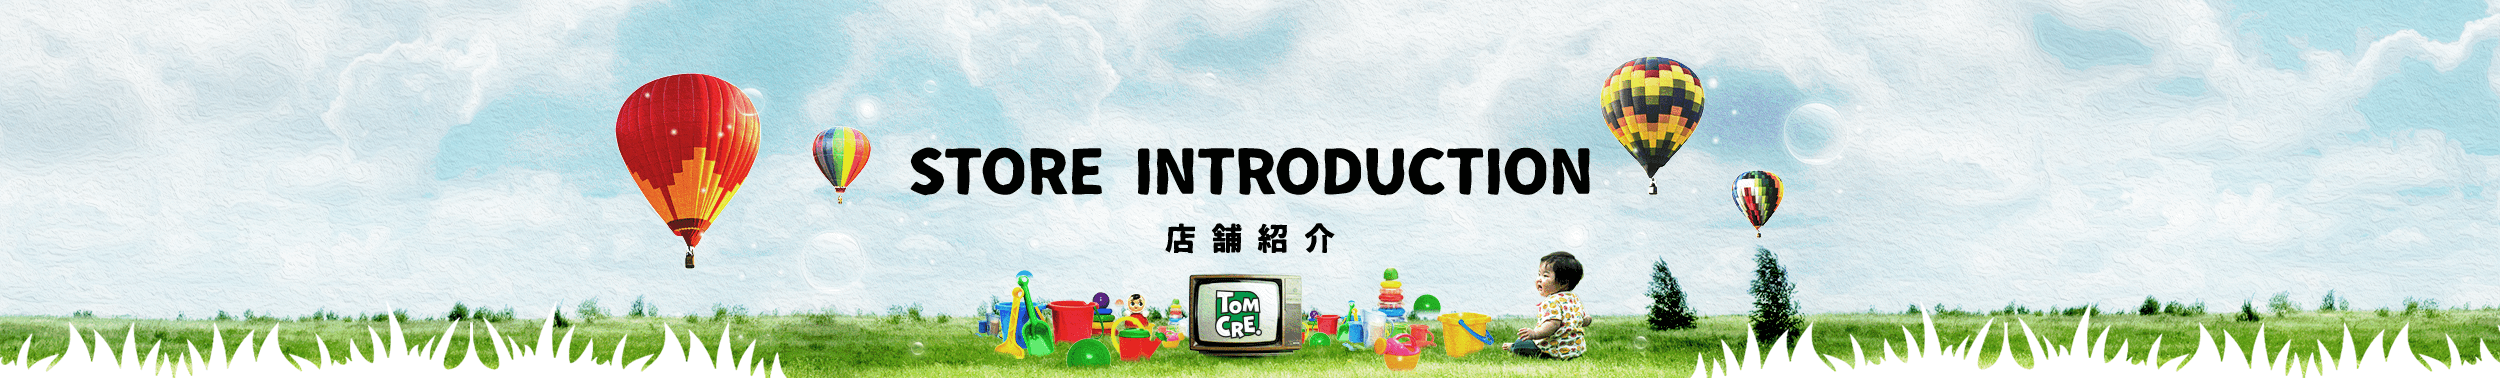 STORE INTRODUCTION 店舗紹介